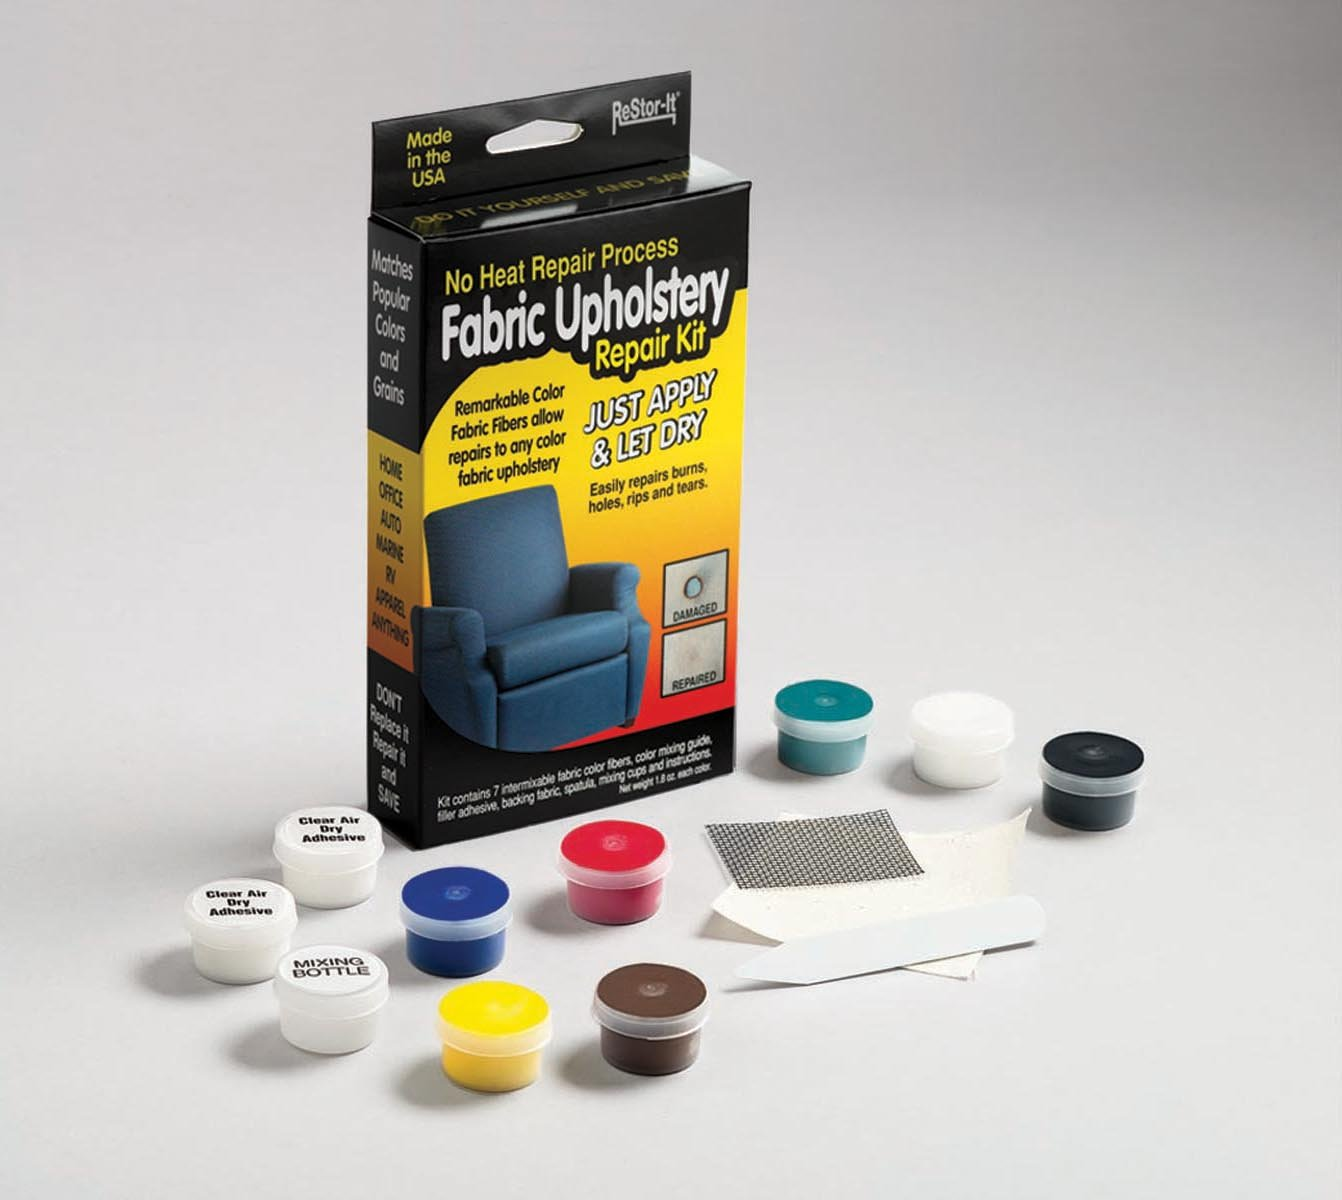 Incredible Master Manufacturing Restor It Fabric Upholstery Repair Kit Seven Colors Fabric Fibers Repairs Any Color Fabric Or Upholstery Pabps2019 Chair Design Images Pabps2019Com